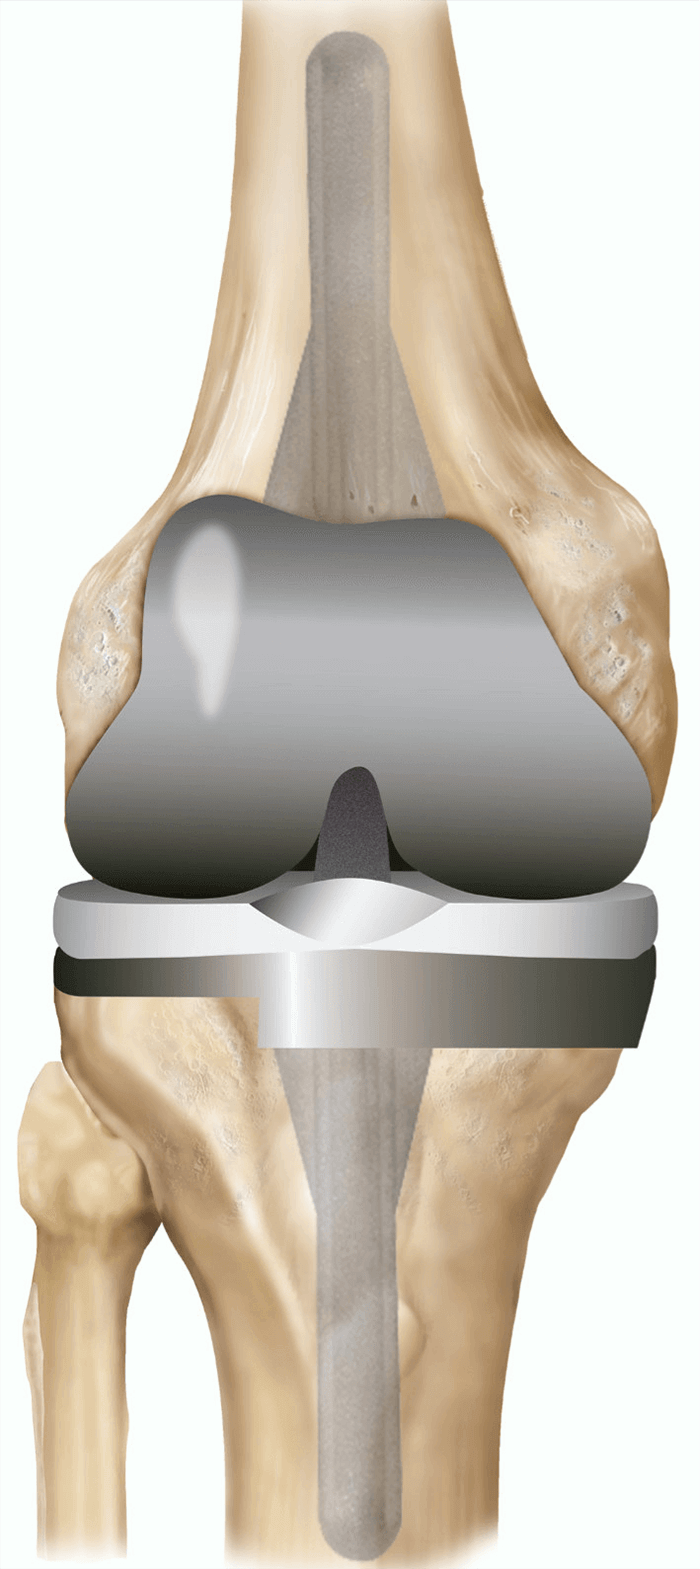 Revision or Complex knee replacement